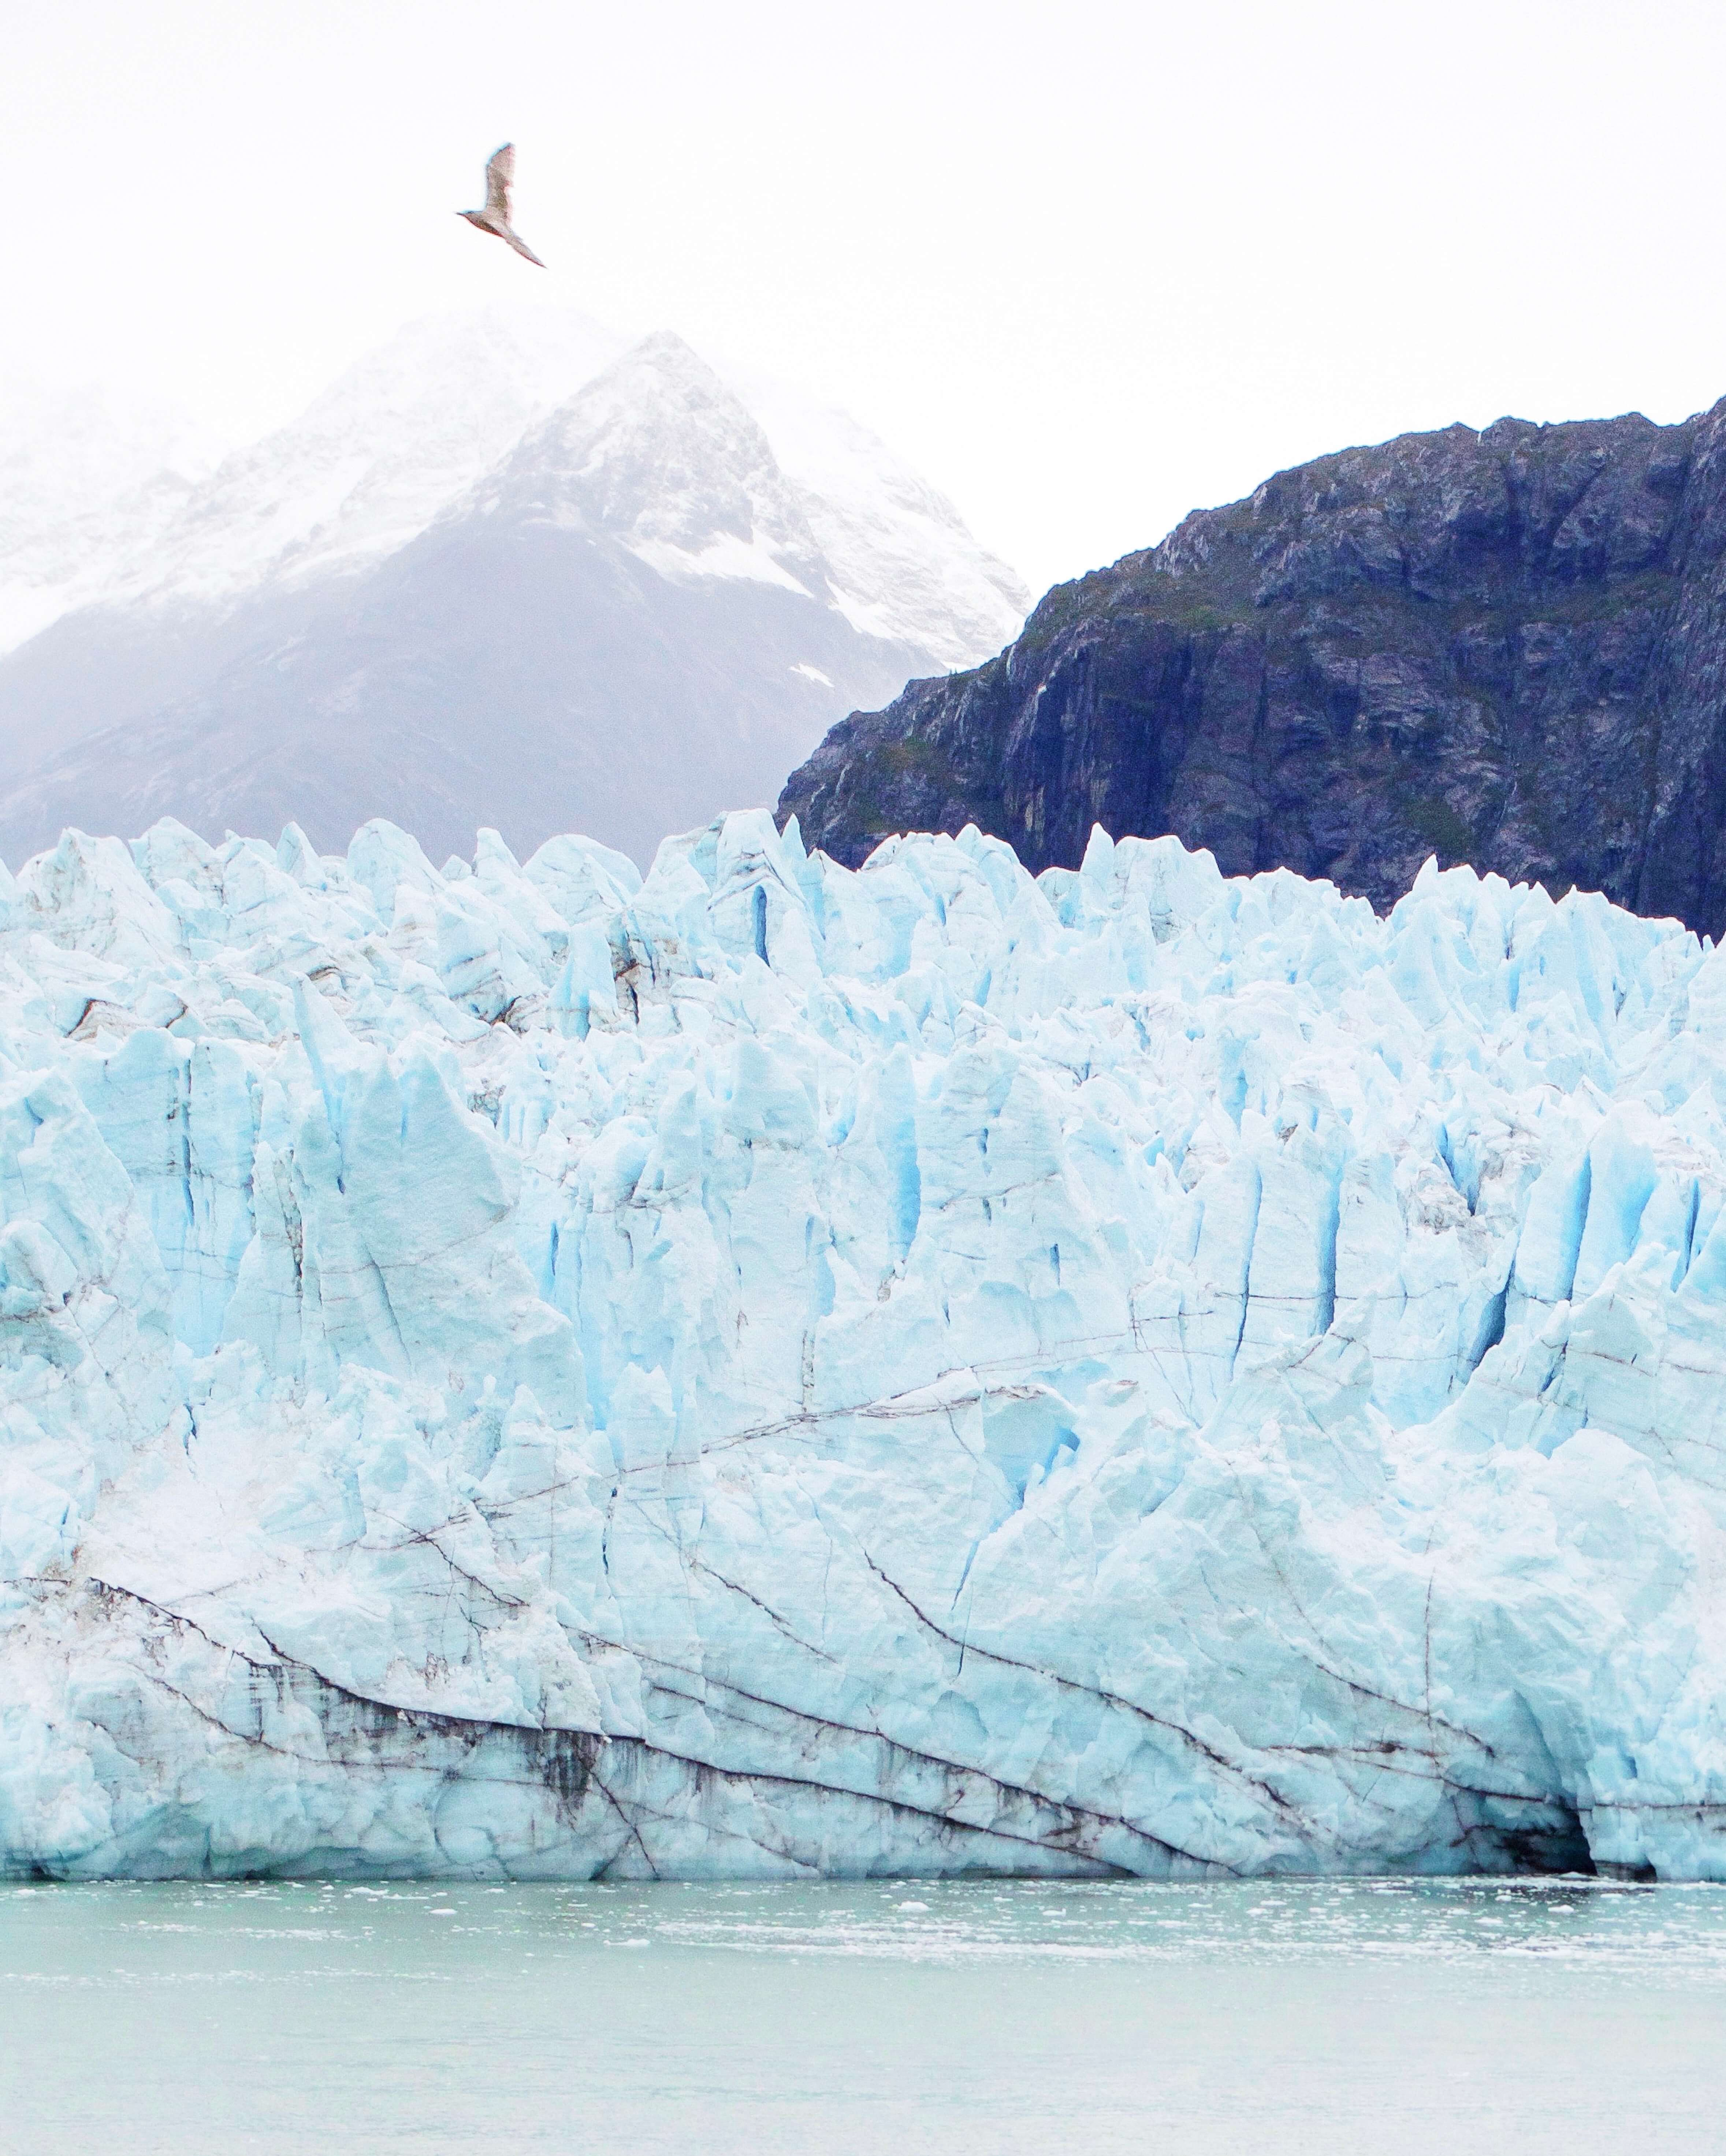 Big flying above rugged glacier front in front of distant foggy mountain peak